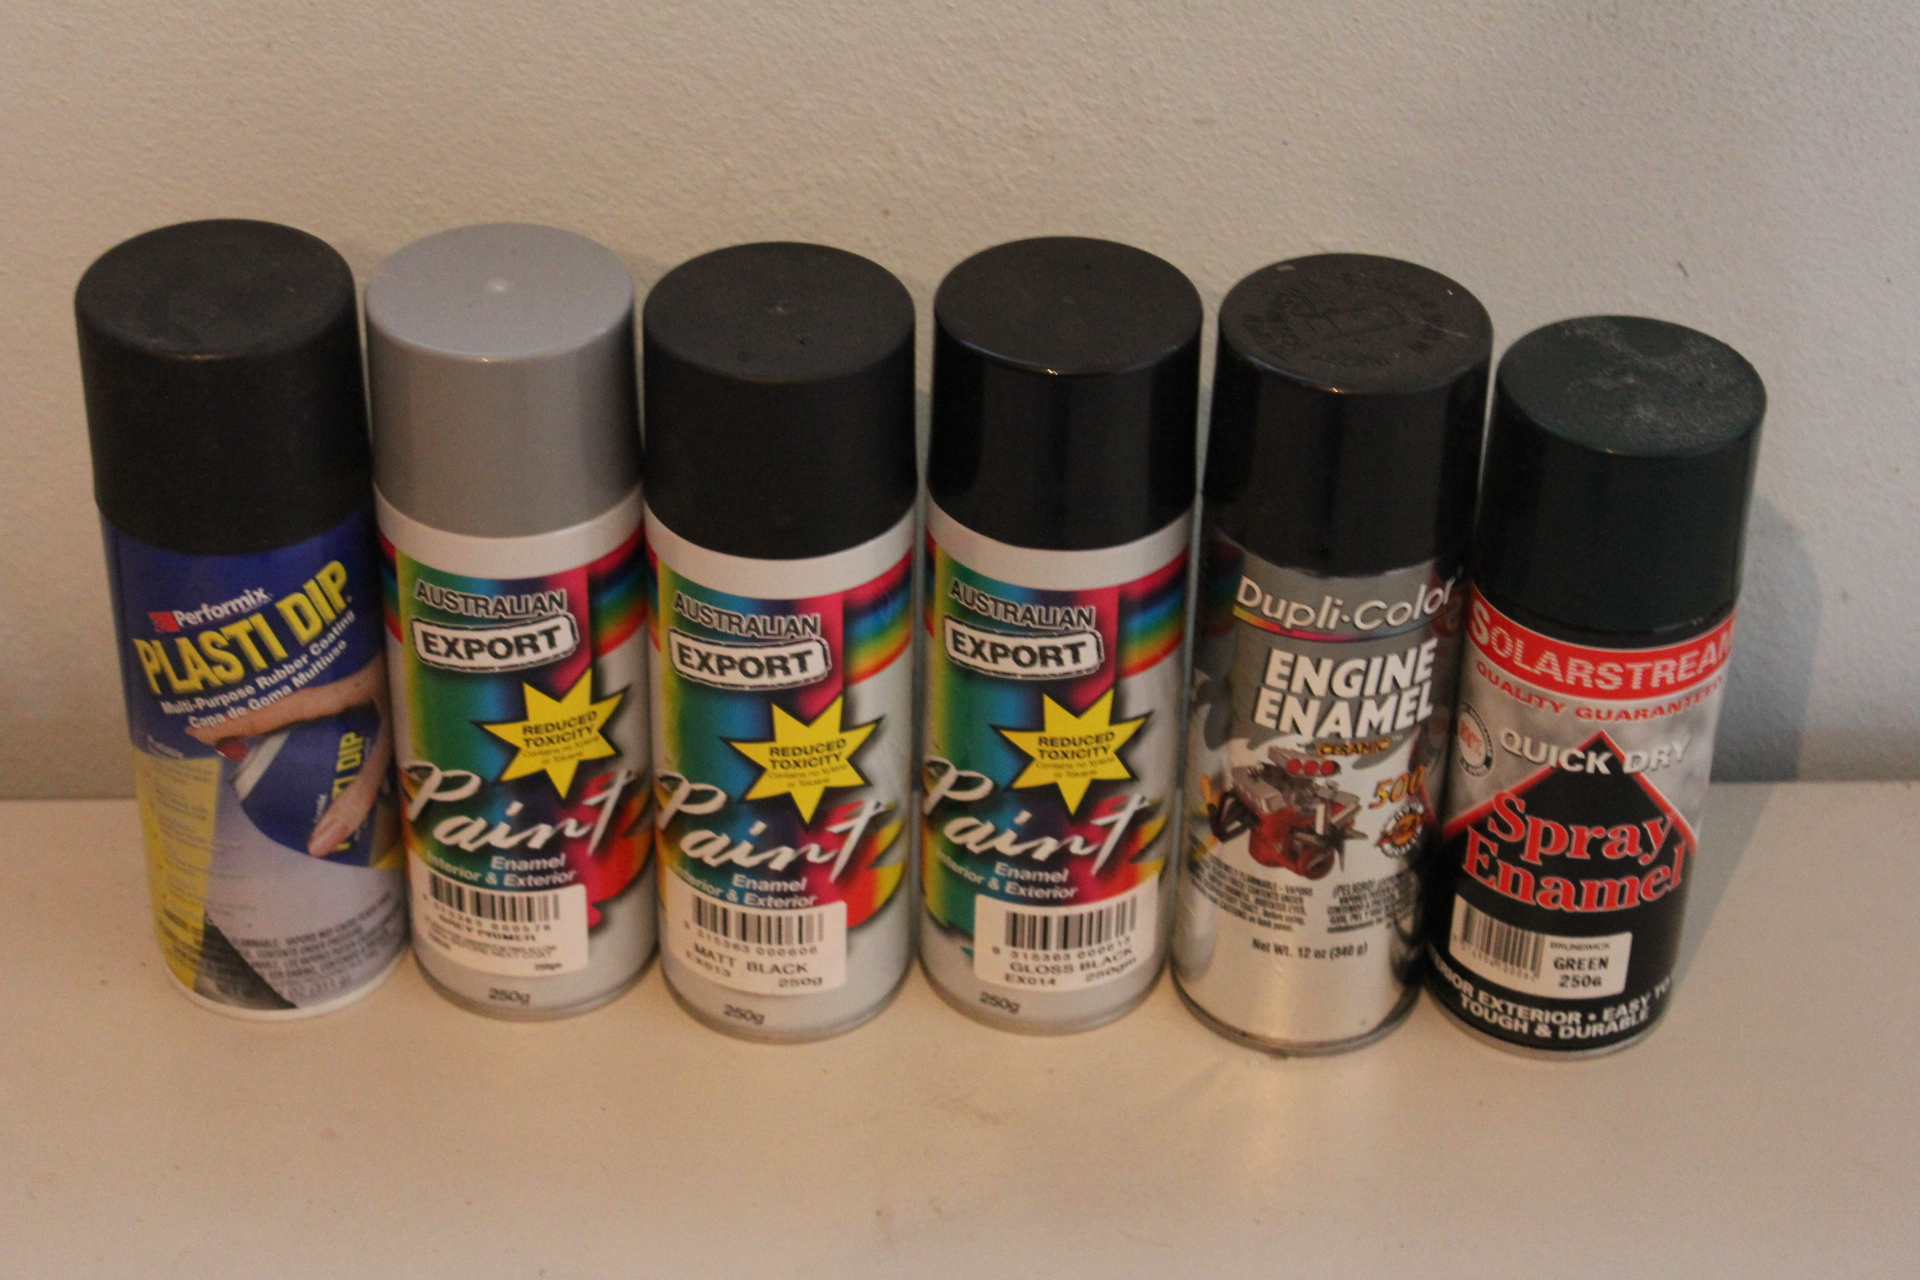 Assorted Aerosol Spray Paints - 23 Cans